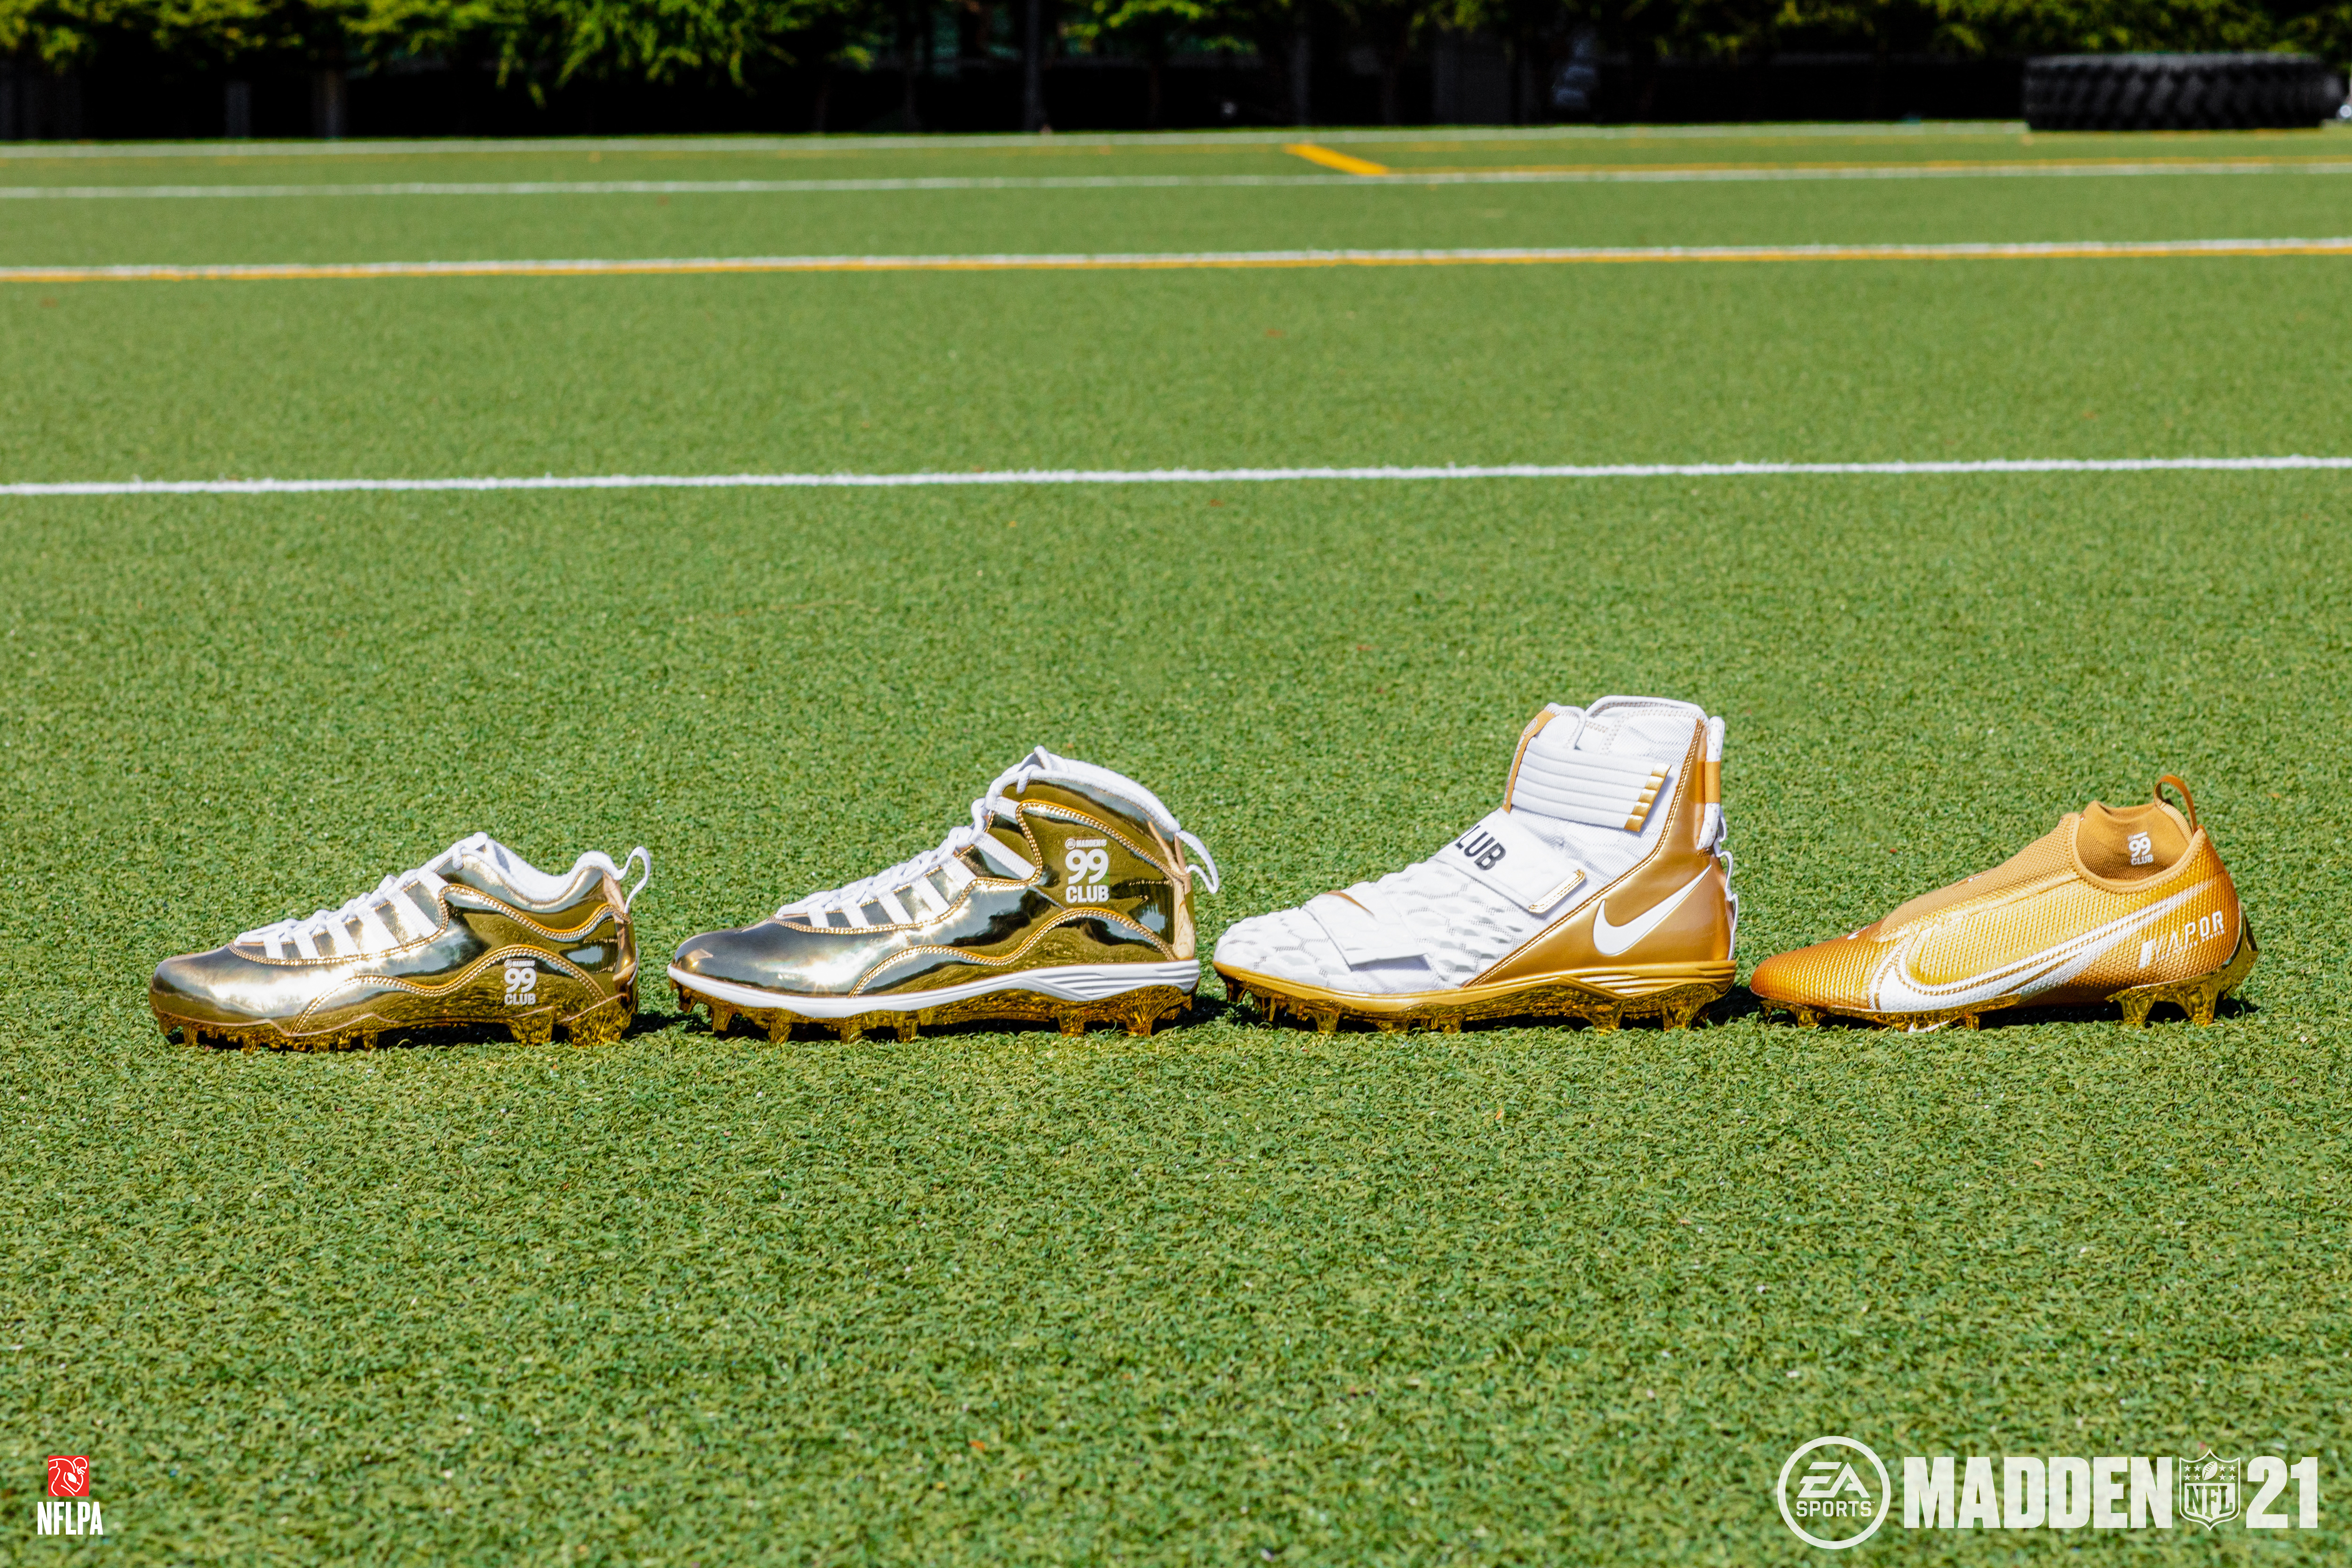 Madden 2021 99 Club Cleats